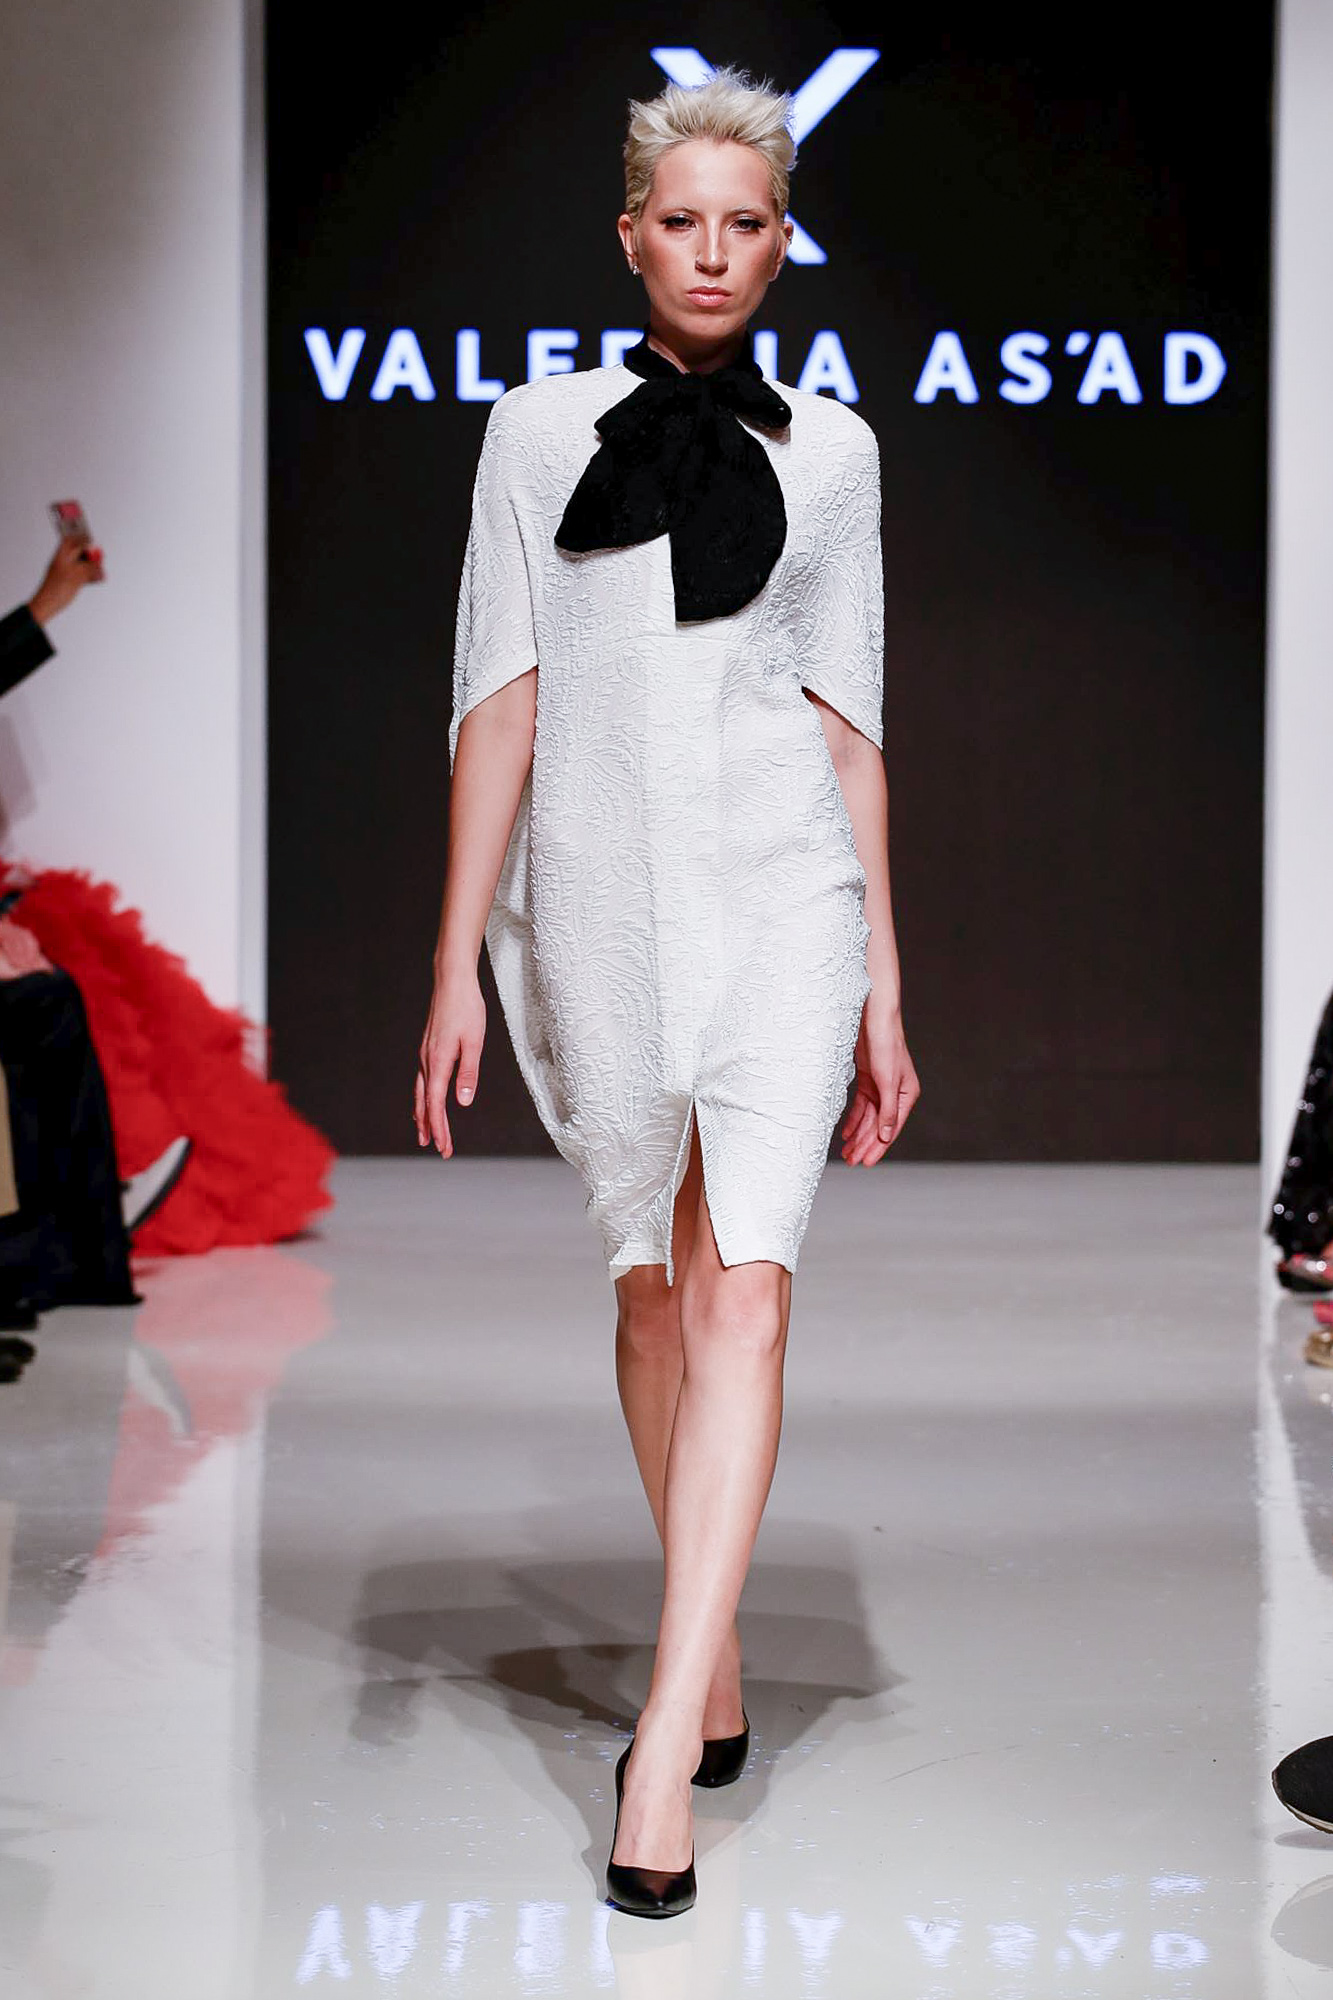 Valeryia As Ad fashion show, Arab Fashion Week collection Spring Summer 2020 in Dubai